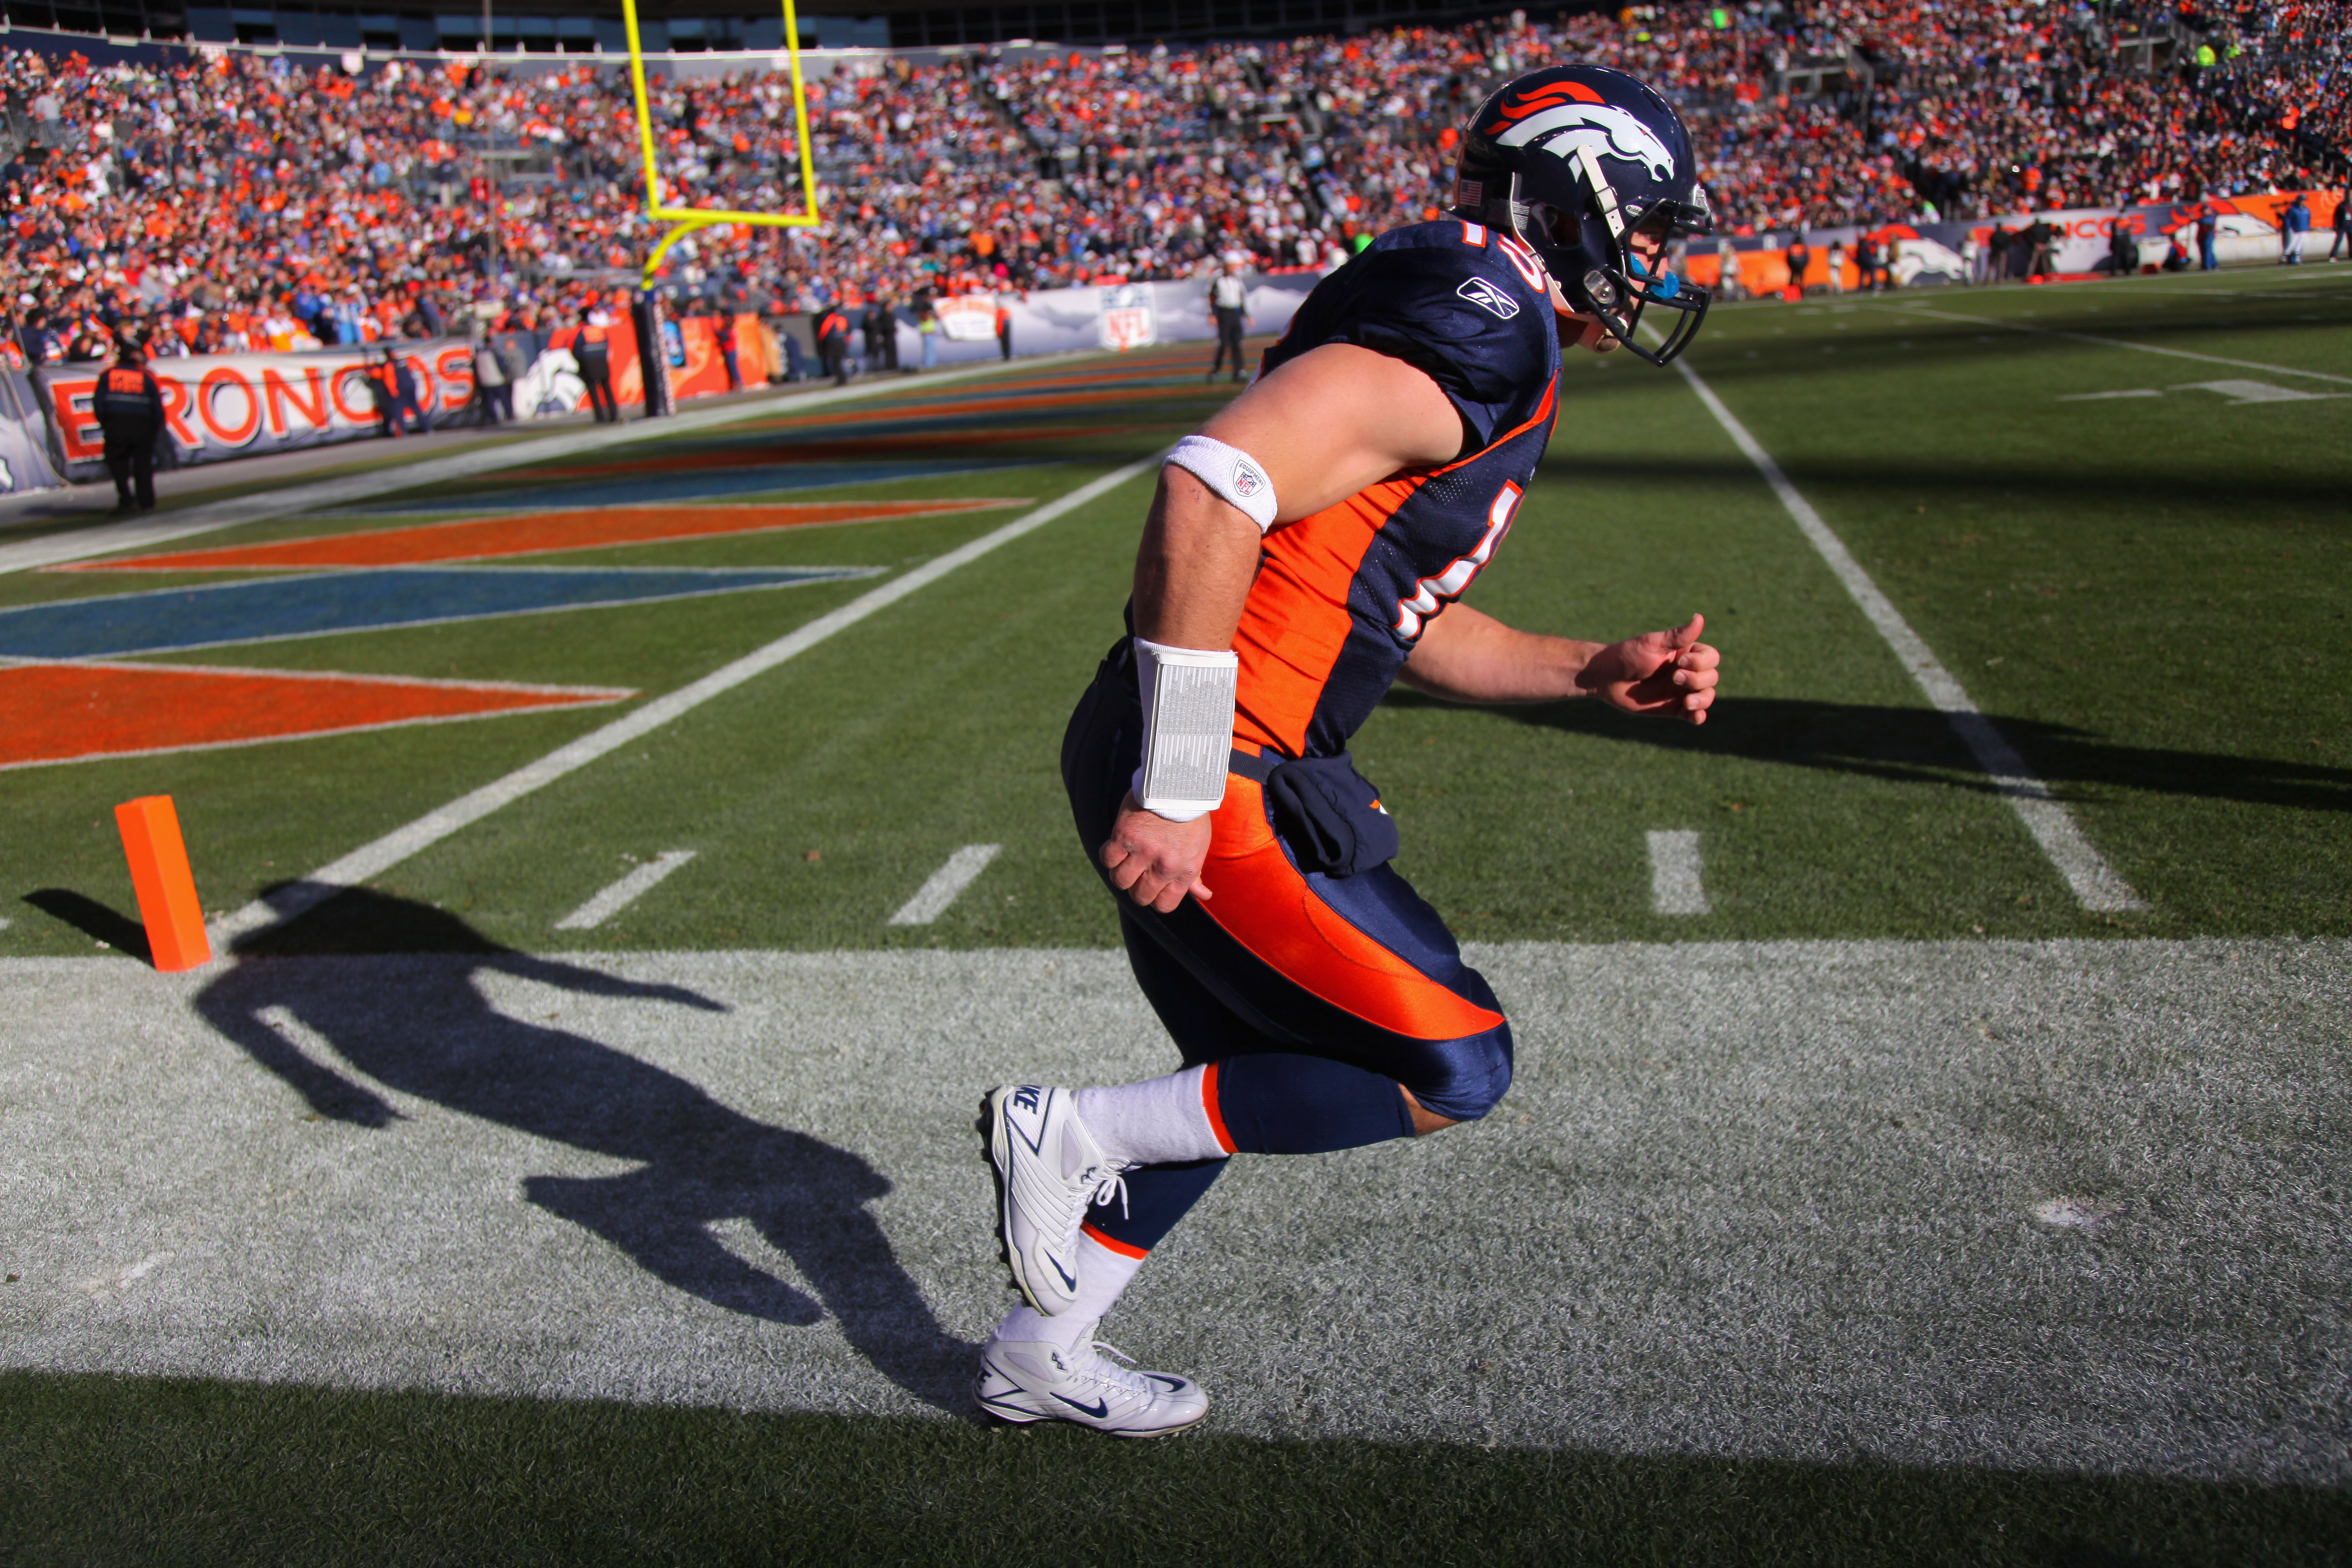 DENVER - JANUARY 02:  Quarterback Tim Tebow #15 of the Denver Broncos warms up prior to facing the San Diego Chargers at INVESCO Field at Mile High on January 2, 2011 in Denver, Colorado.  (Photo by Doug Pensinger/Getty Images)